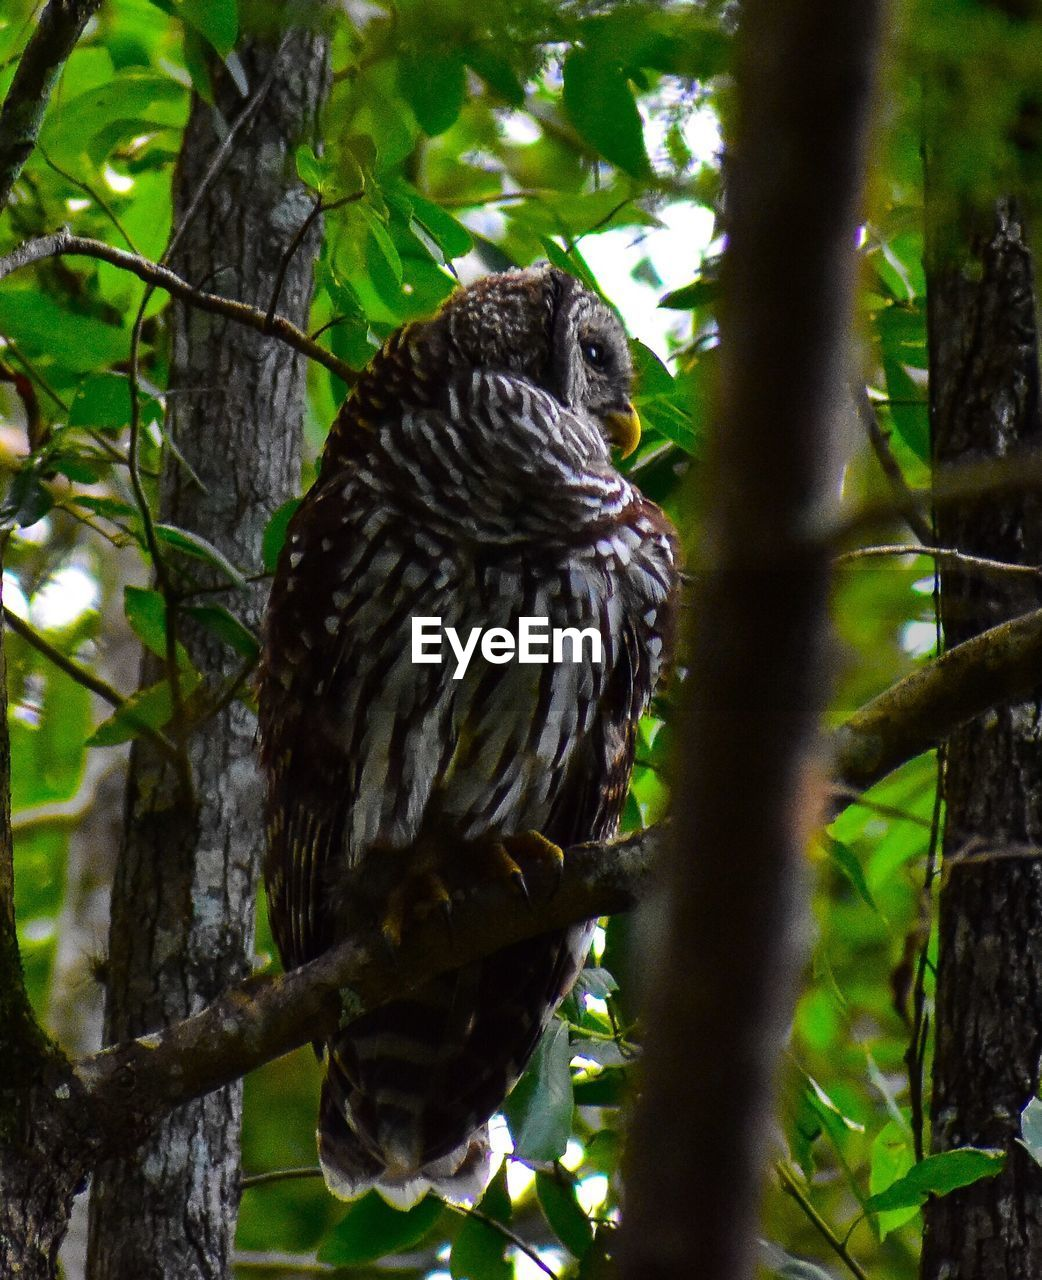 animal, animal themes, animal wildlife, bird, animals in the wild, one animal, tree, vertebrate, plant, branch, perching, nature, day, no people, bird of prey, focus on foreground, outdoors, low angle view, forest, owl, eagle